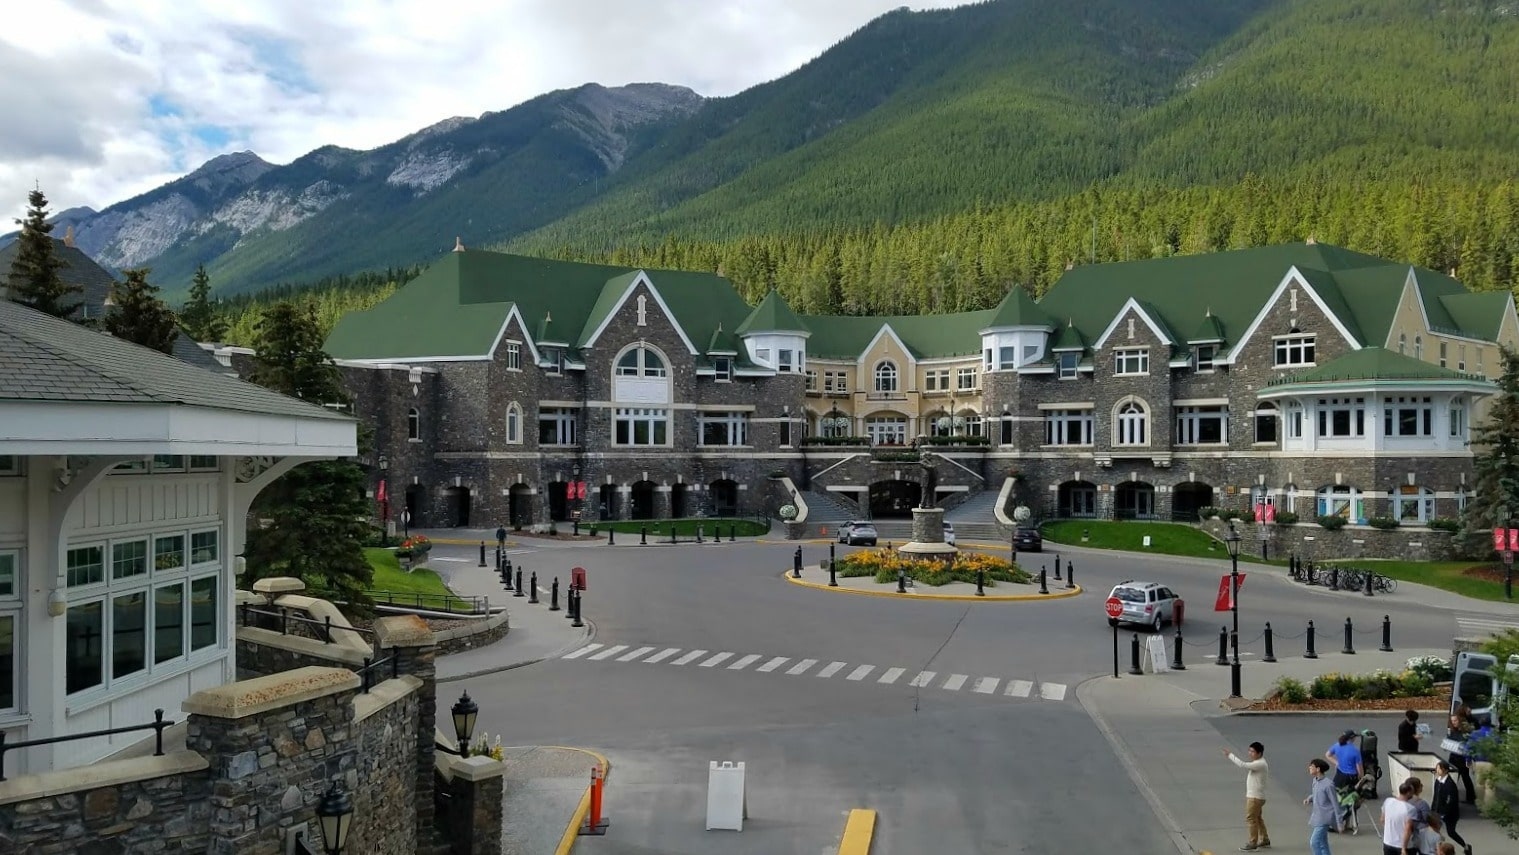 The Outer Courtyard of the Banff Springs Hotel and entrance for guests